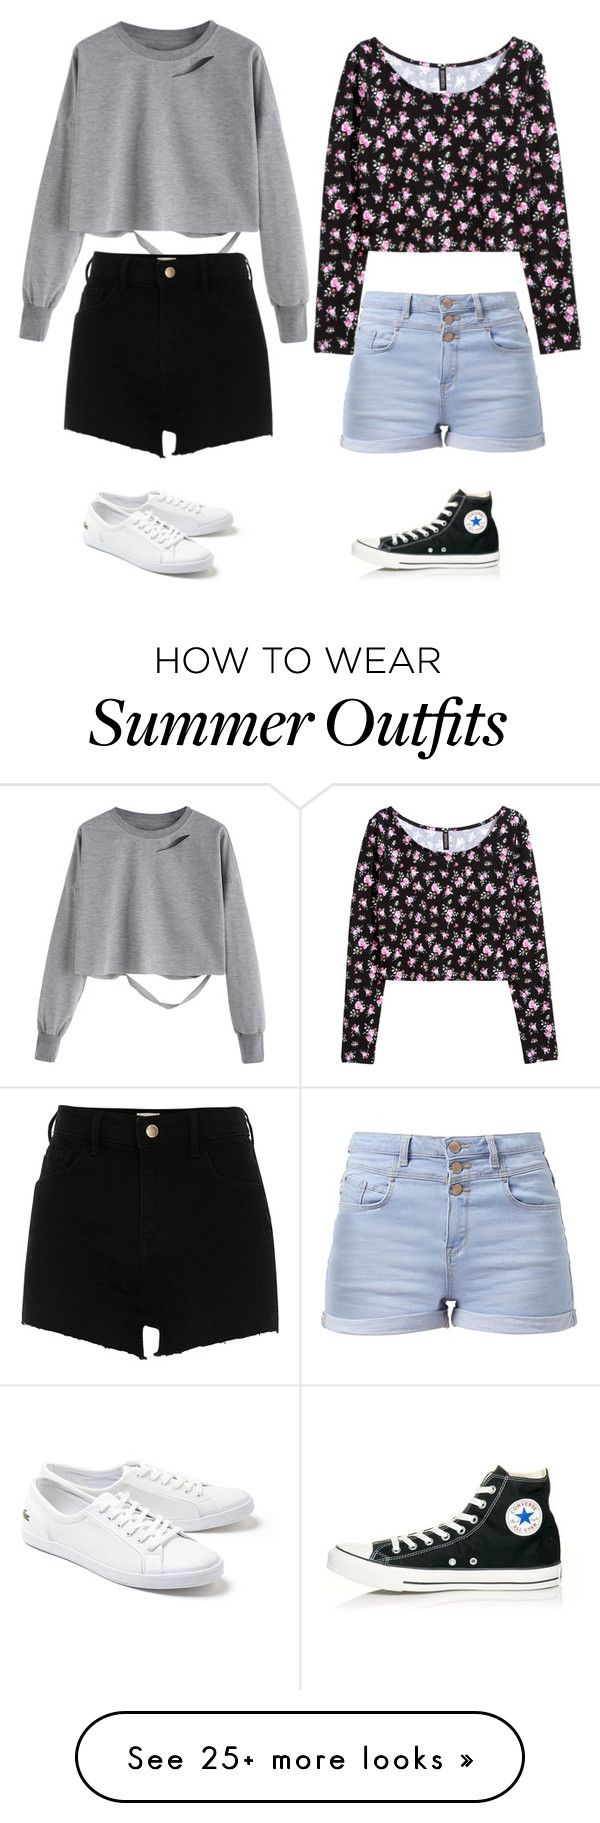 """""""Outfit of summer 2017"""" by clea69 on Polyvore featuring River Island, ..."""